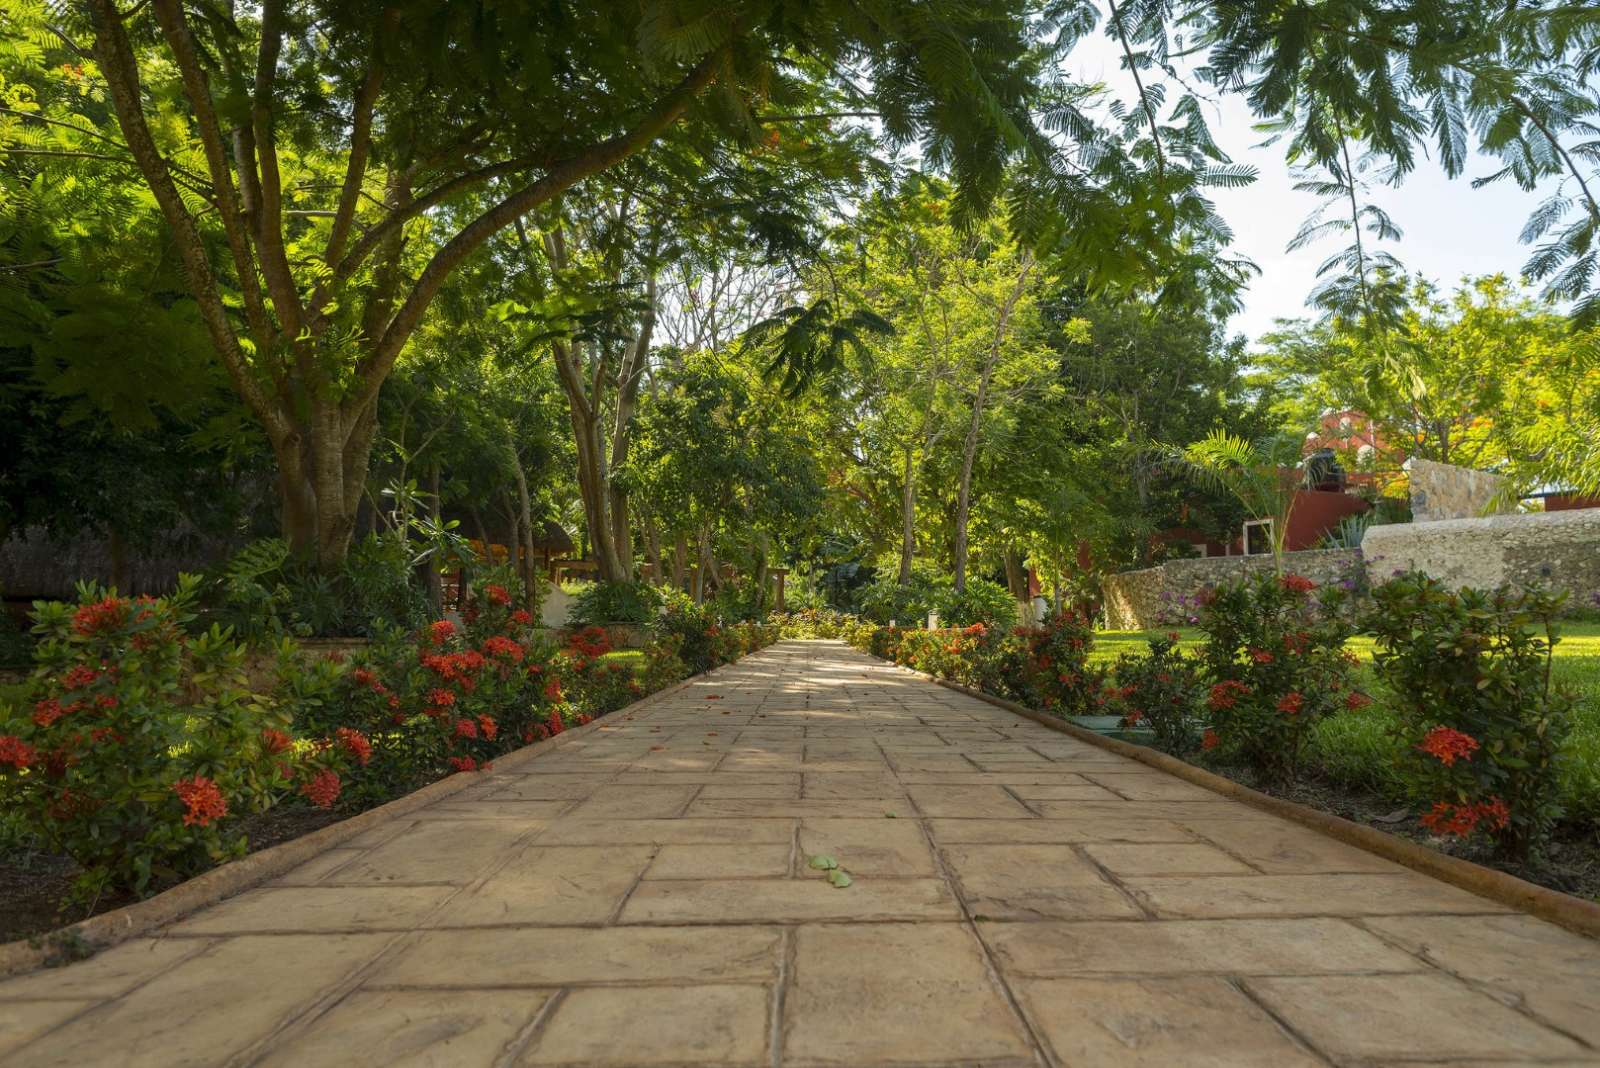 Pathway at Hacienda Santa Cruz